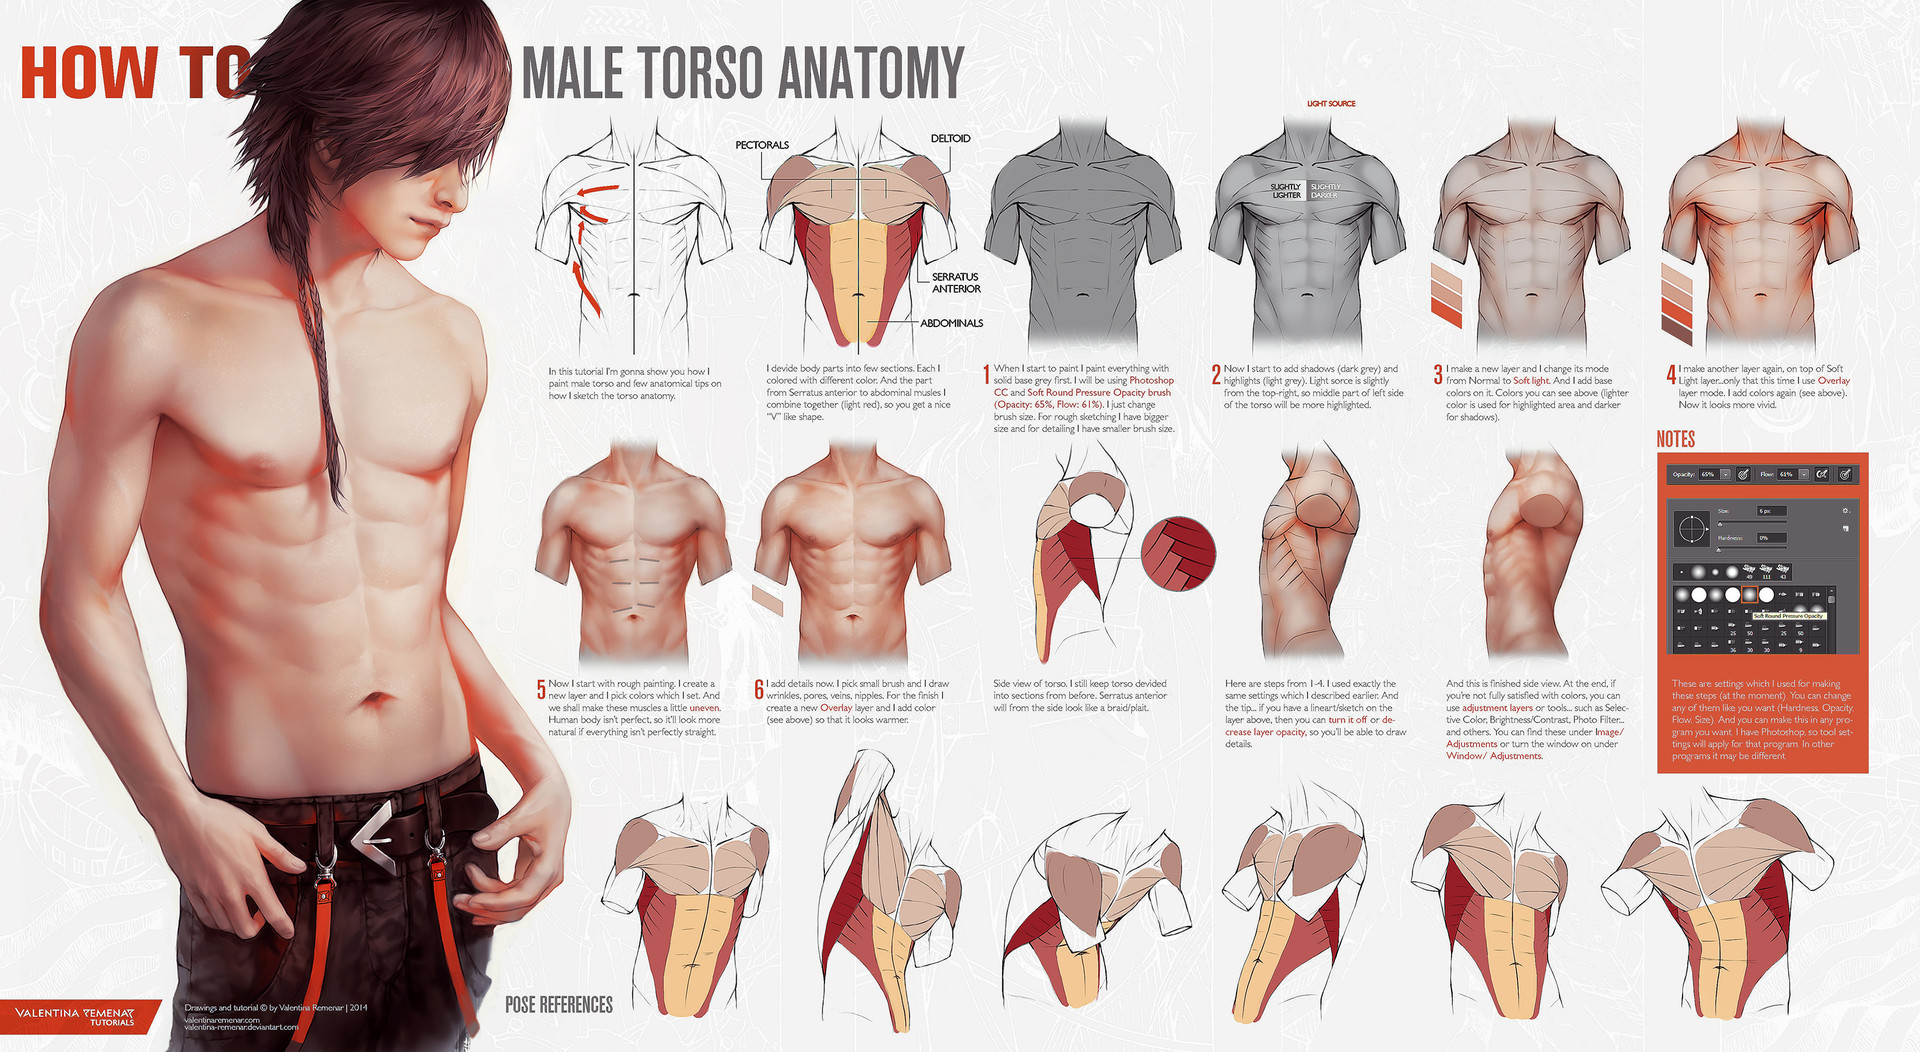 ArtStation - Male Torso Anatomy and Hand References, Valentina Remenar